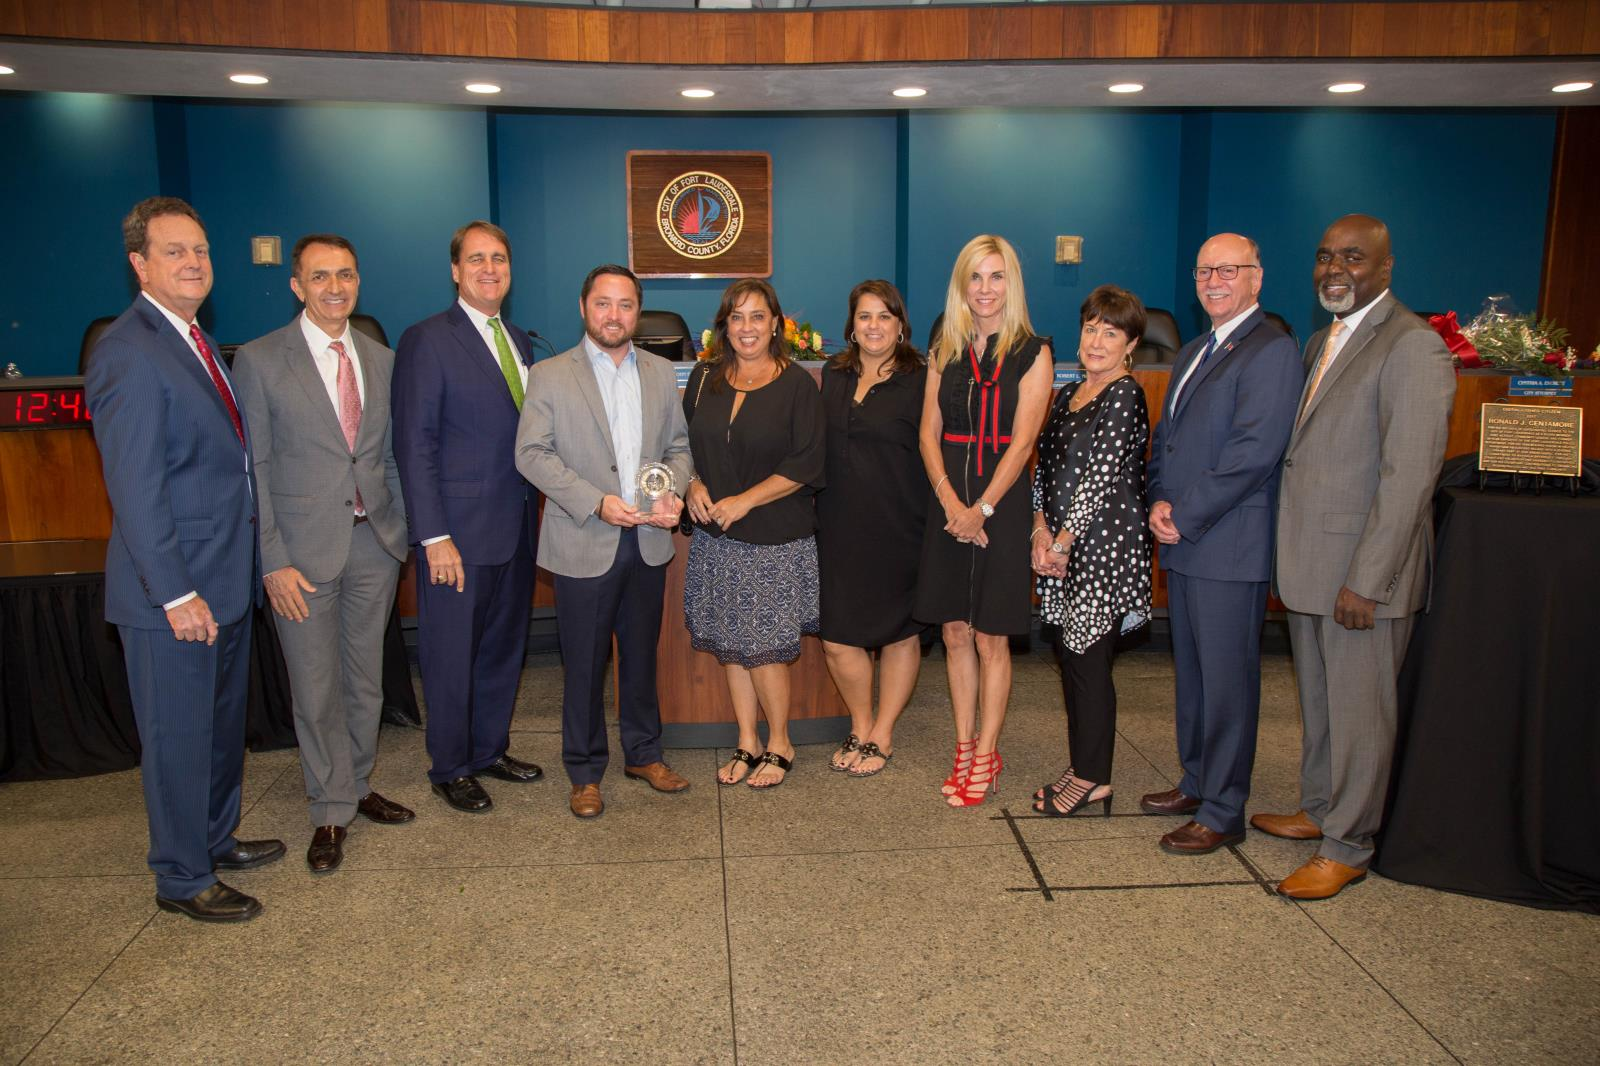 Fort Lauderdale City Commission with family and friends of the 2017 Honored Founder Terry Stiles